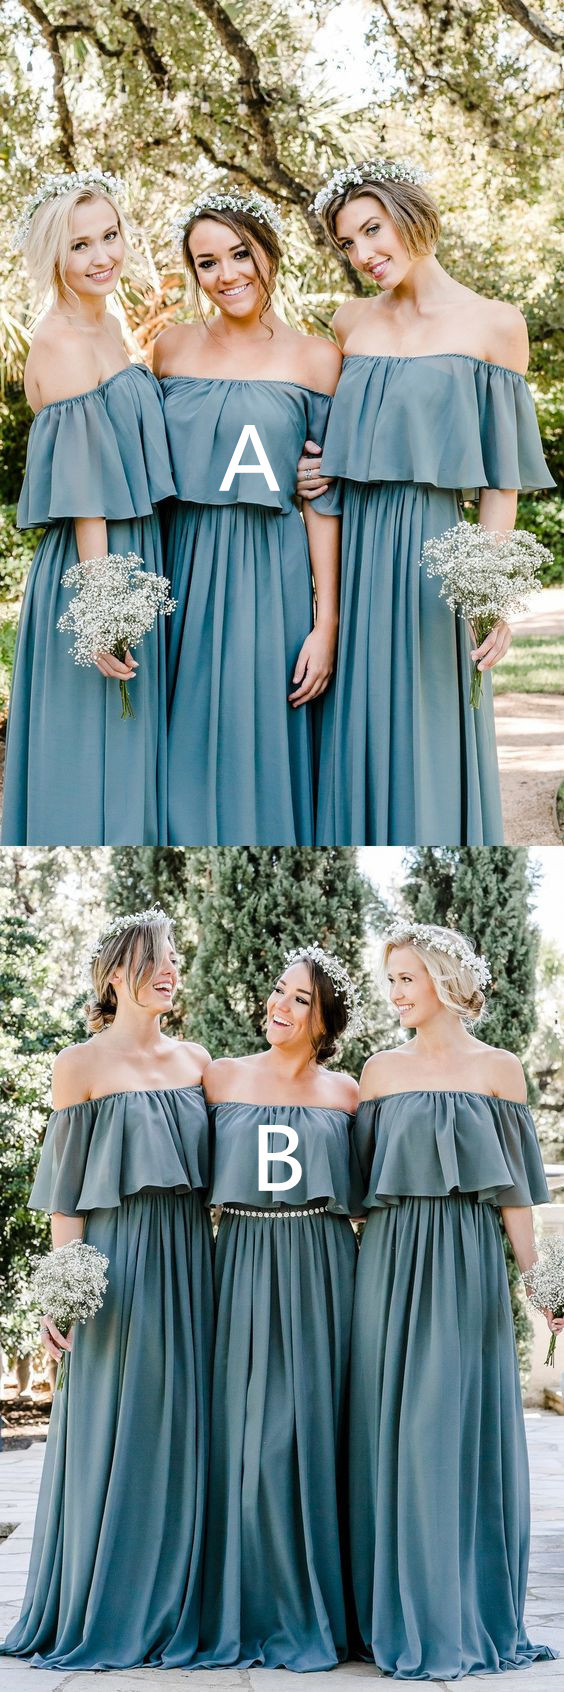 Off the Shoulder Bridesmaid Dresses, Ruffled Bridesmaid Dresses, Dusty Blue